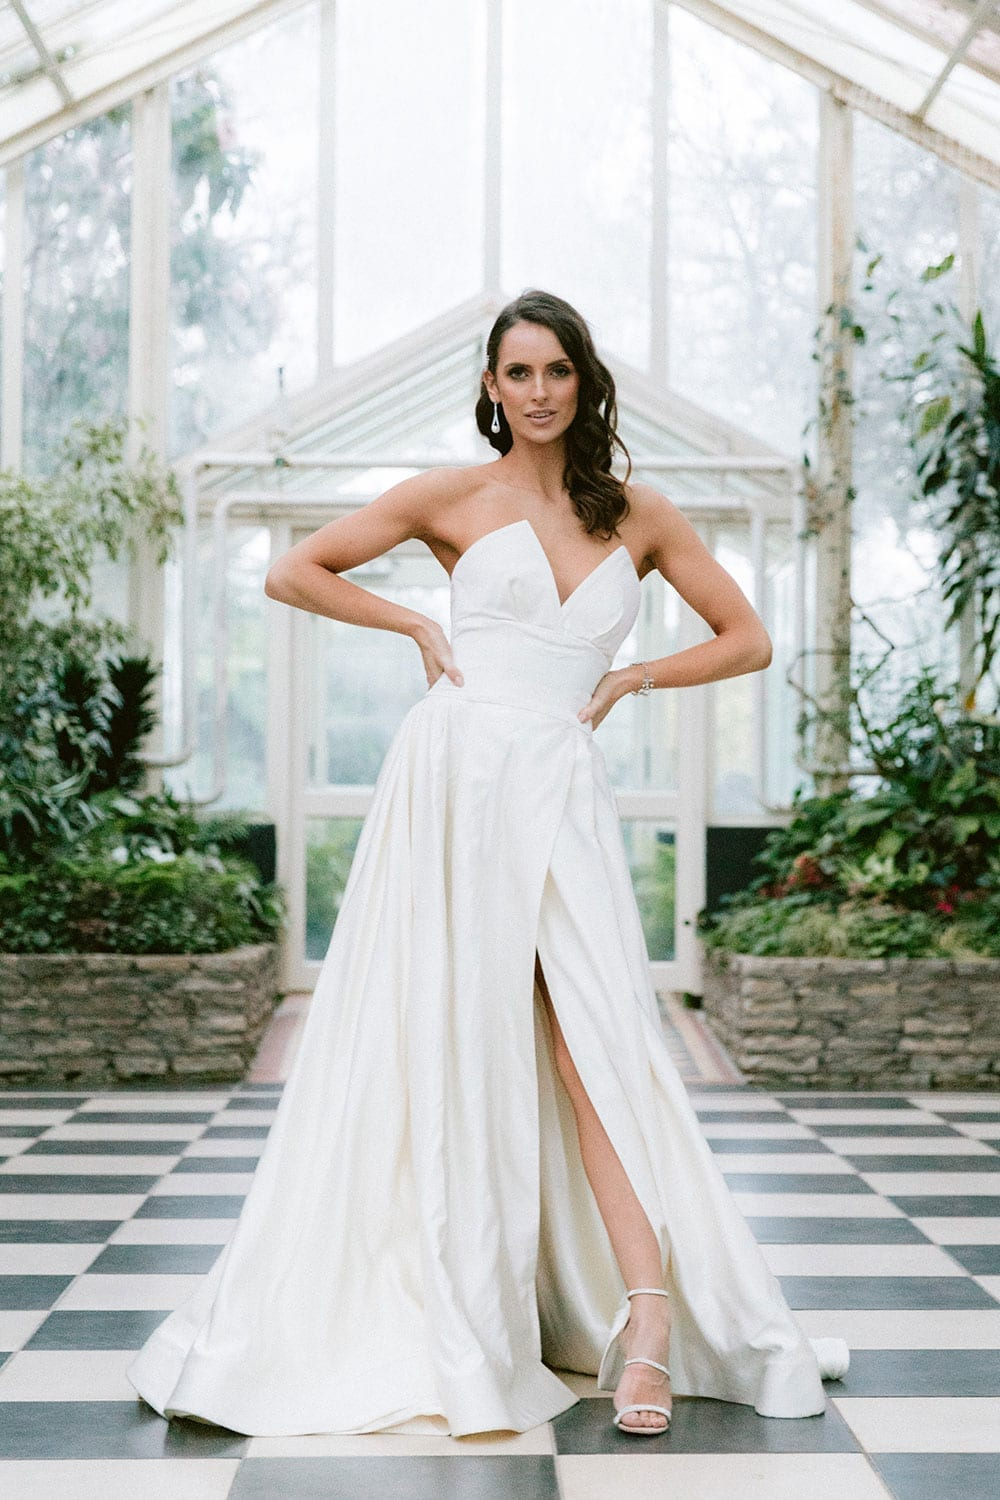 Model wearing Vinka Design Germaine Wedding Dress, a strapless dramatic wedding dress with split in a botanical garden greenhouse hands on hips